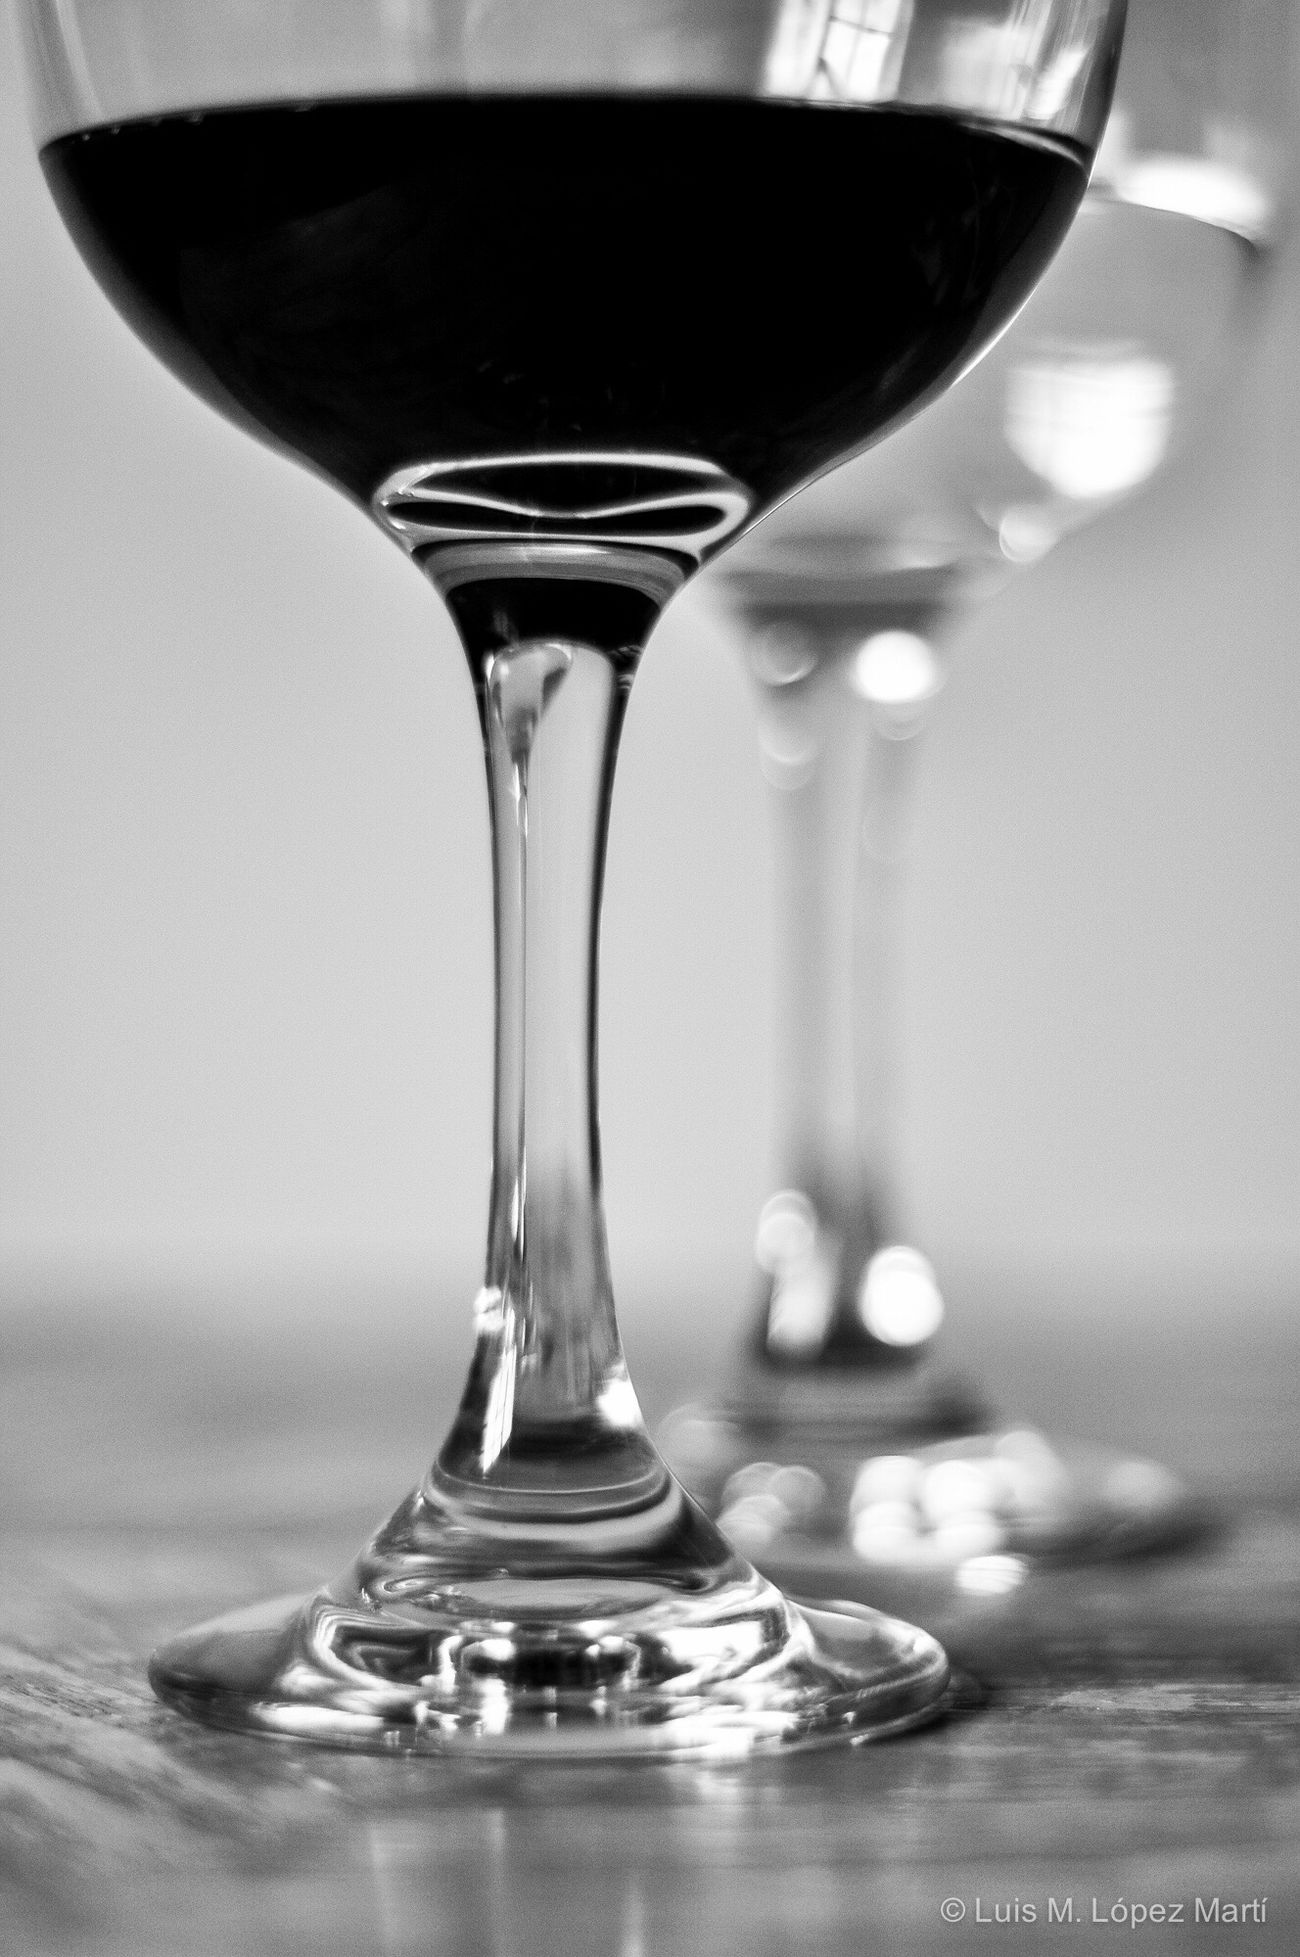 Tegucigalpa Honduras Wineglass Close-up Wine Wine Moments Lifestyles Blackandwhite Black And White Black & White Blackandwhite Photography Black And White Photography Black&white Blackandwhitephotography Black And White Collection  Water Bokeh Bokeh Photography Nikon Nikonphotography Photography Photo Light And Shadow Photooftheday Reflection Cup